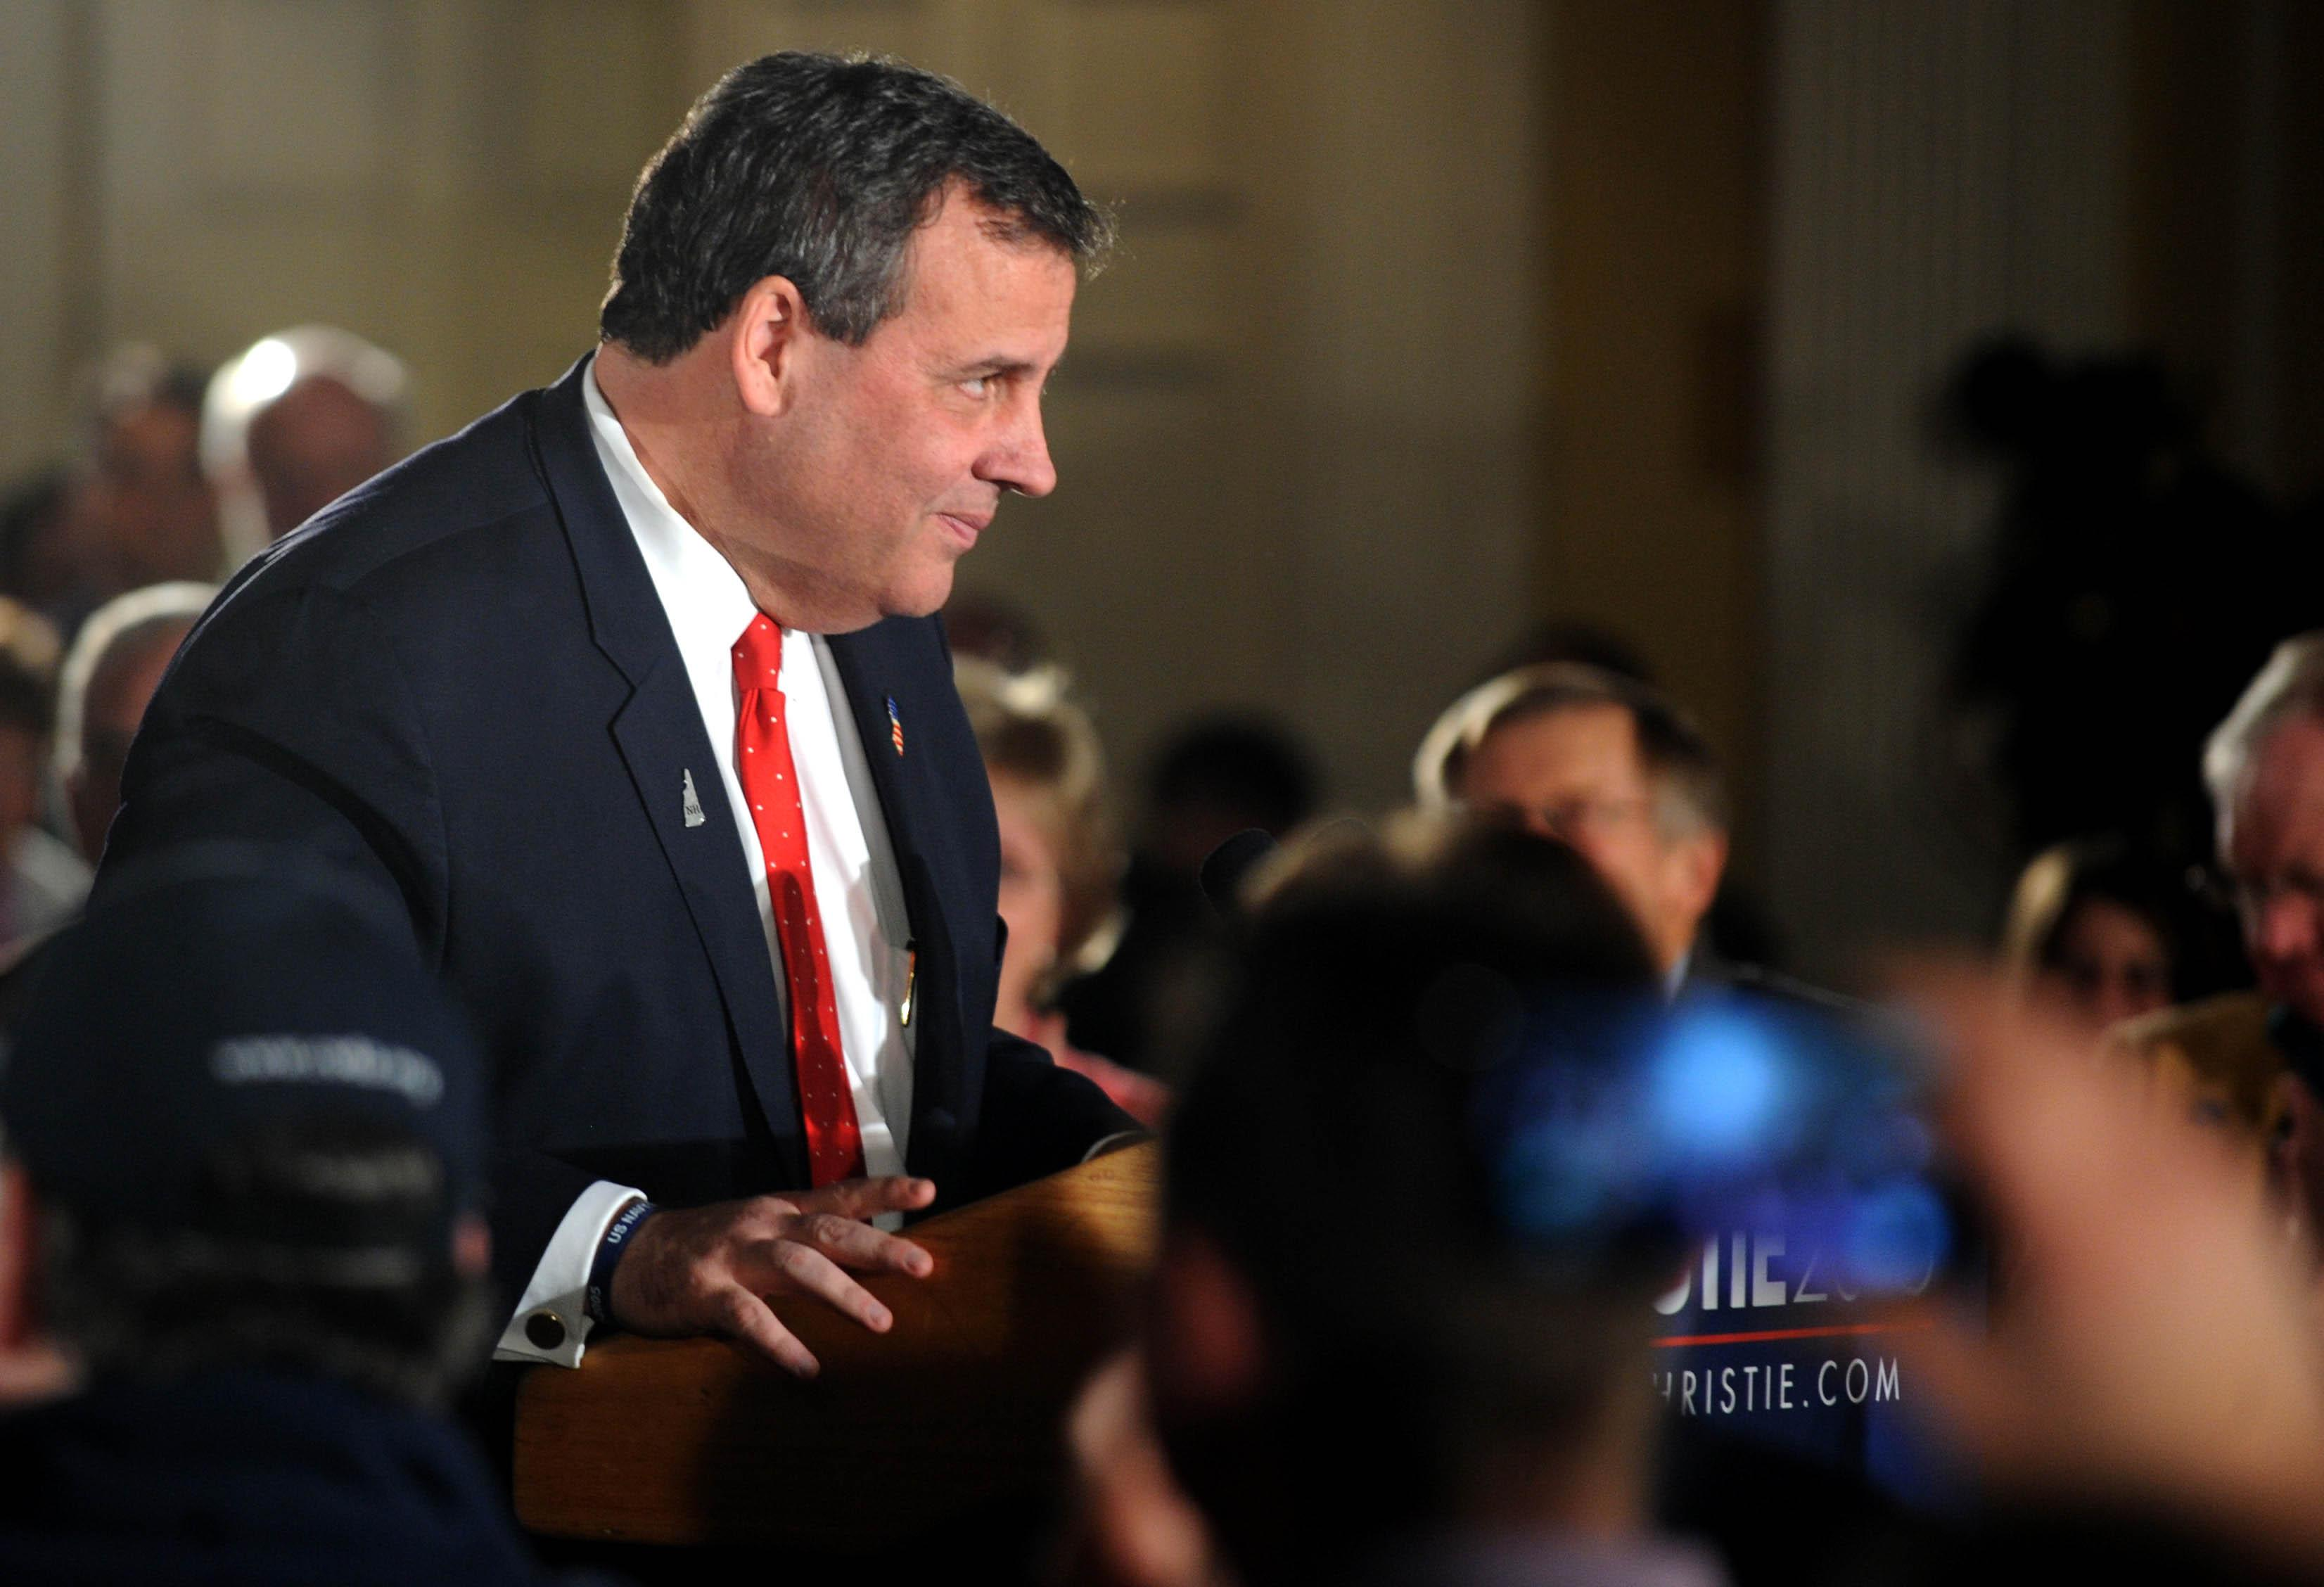 Christie Will Reportedly Suspend Campaign, Becoming the First Casualty of New Hampshire